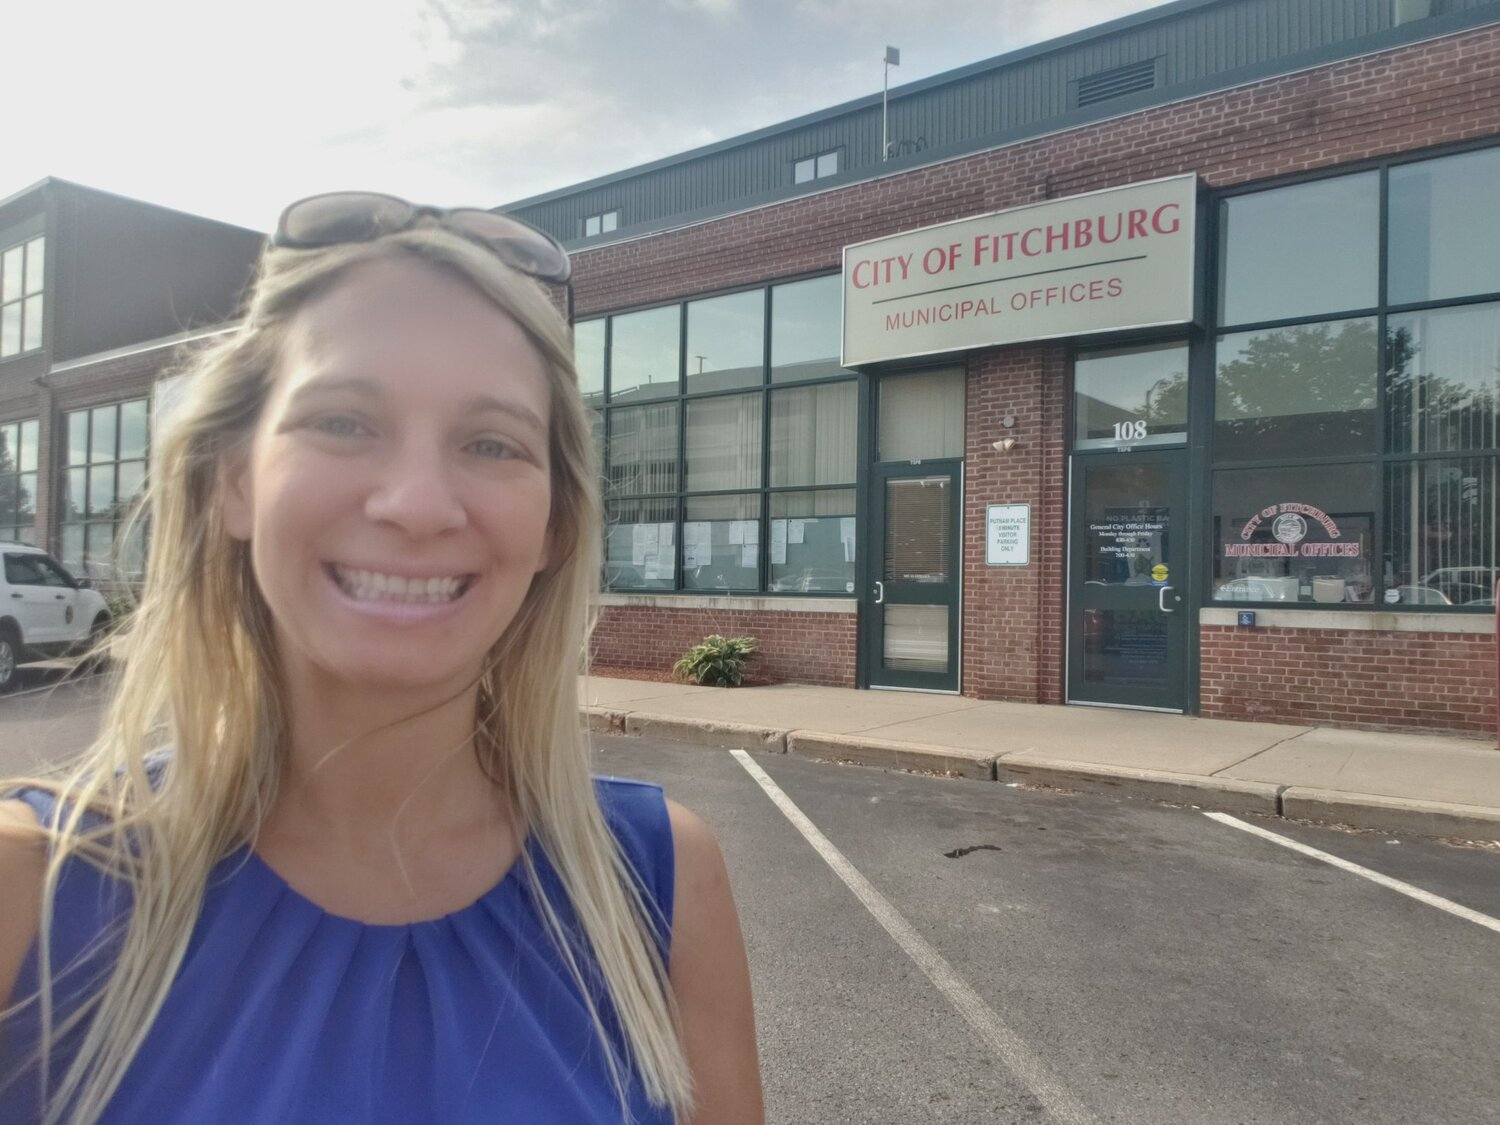 Celebrating  #CityHallSelfie  day today in @FitchburgMass with a little  #Fitchburg  City Hall History!  Here is Fitchburg's Current City Municipal Offices at 166 Boulder Drive. See thread for more Historical & Future Locations! @ELGL50  #localgov   #CityHallSelfieDay